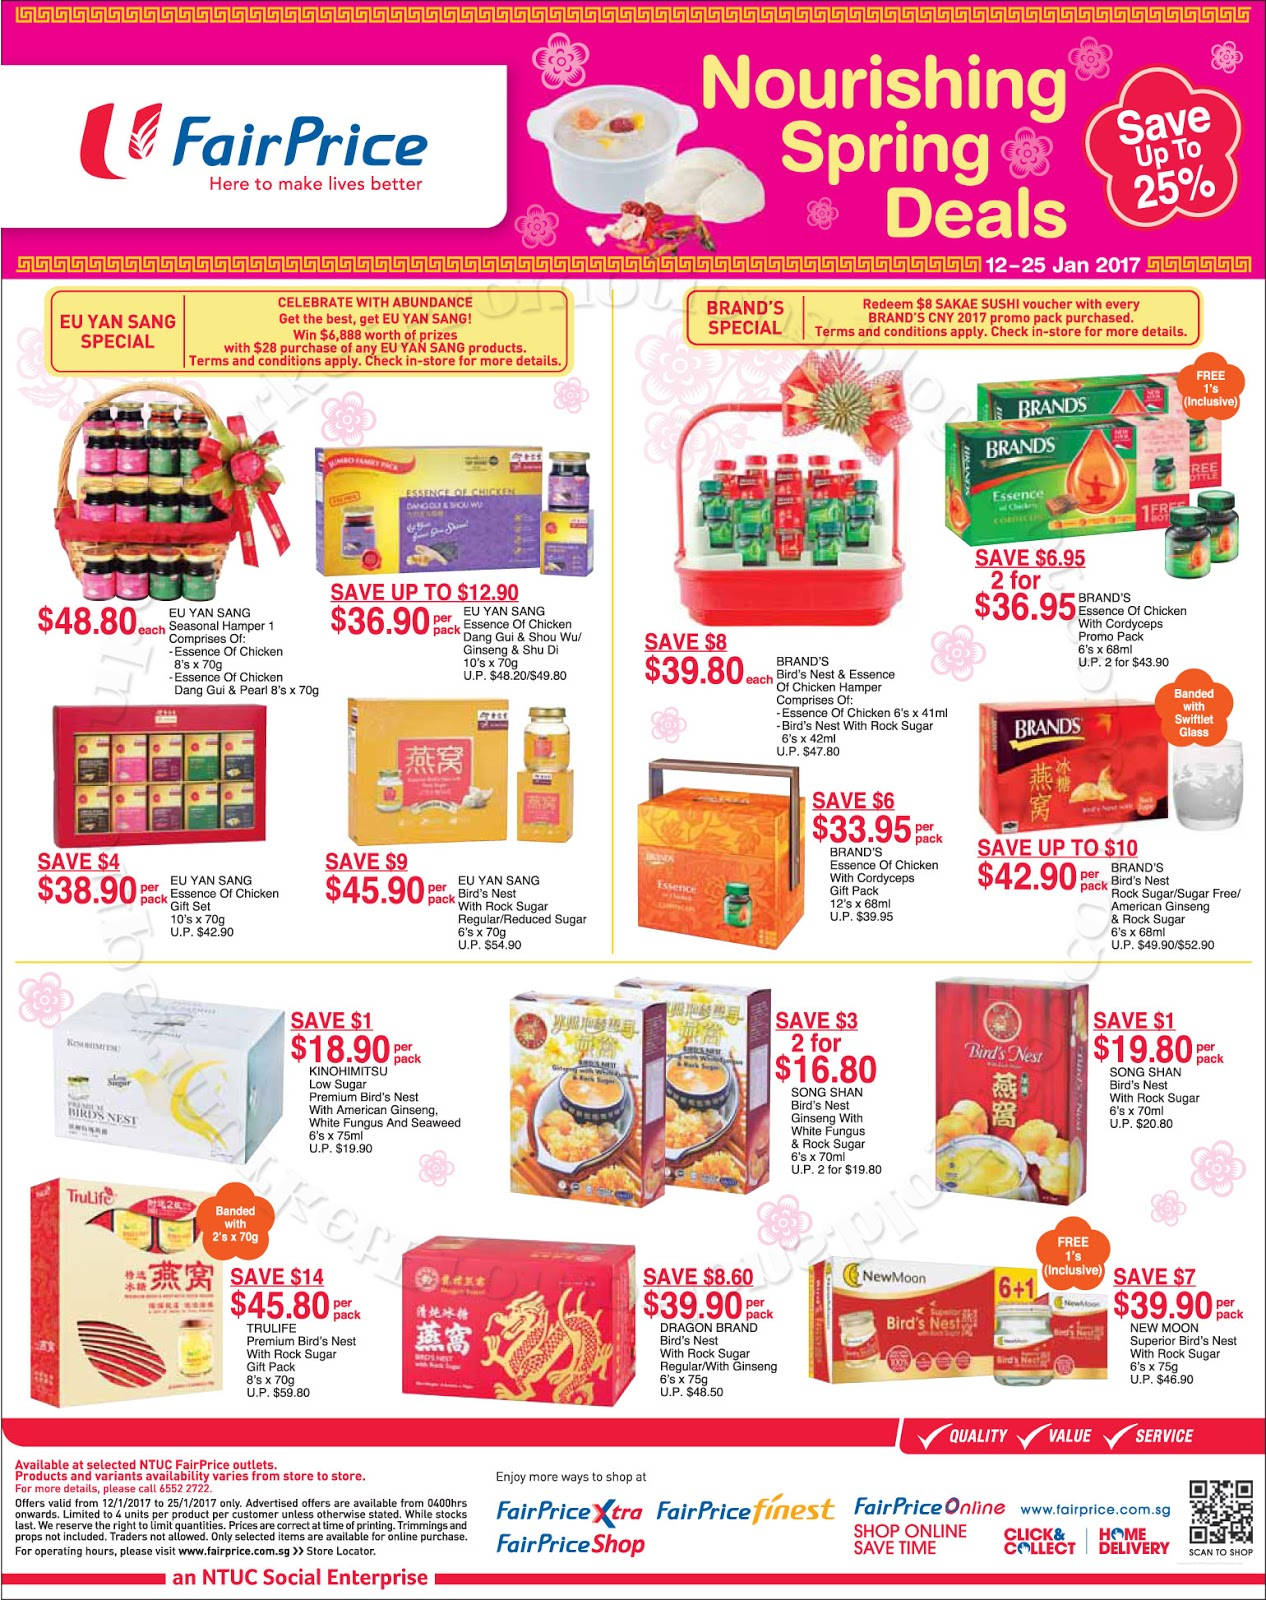 NTUC FairPrice Chinese New Year Hampers Gifts 12 25 January